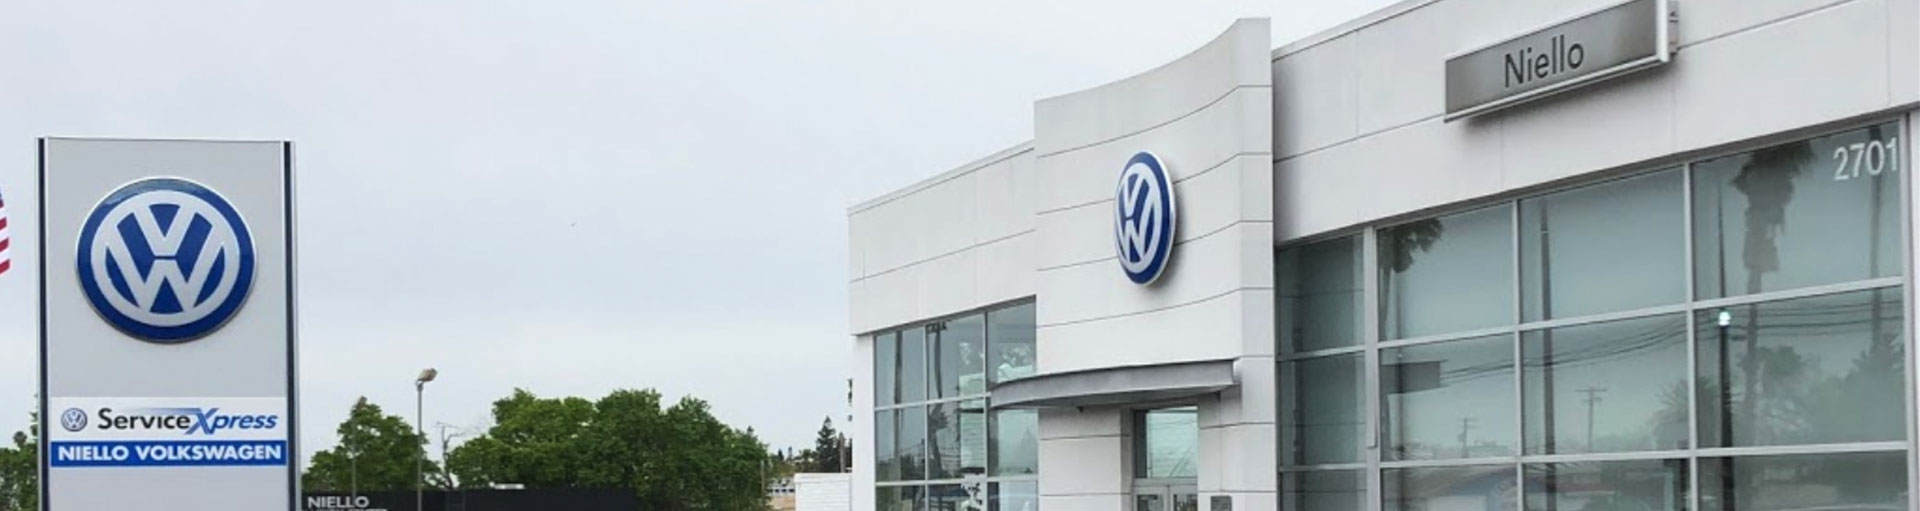 Niello Volkswagen Service Department